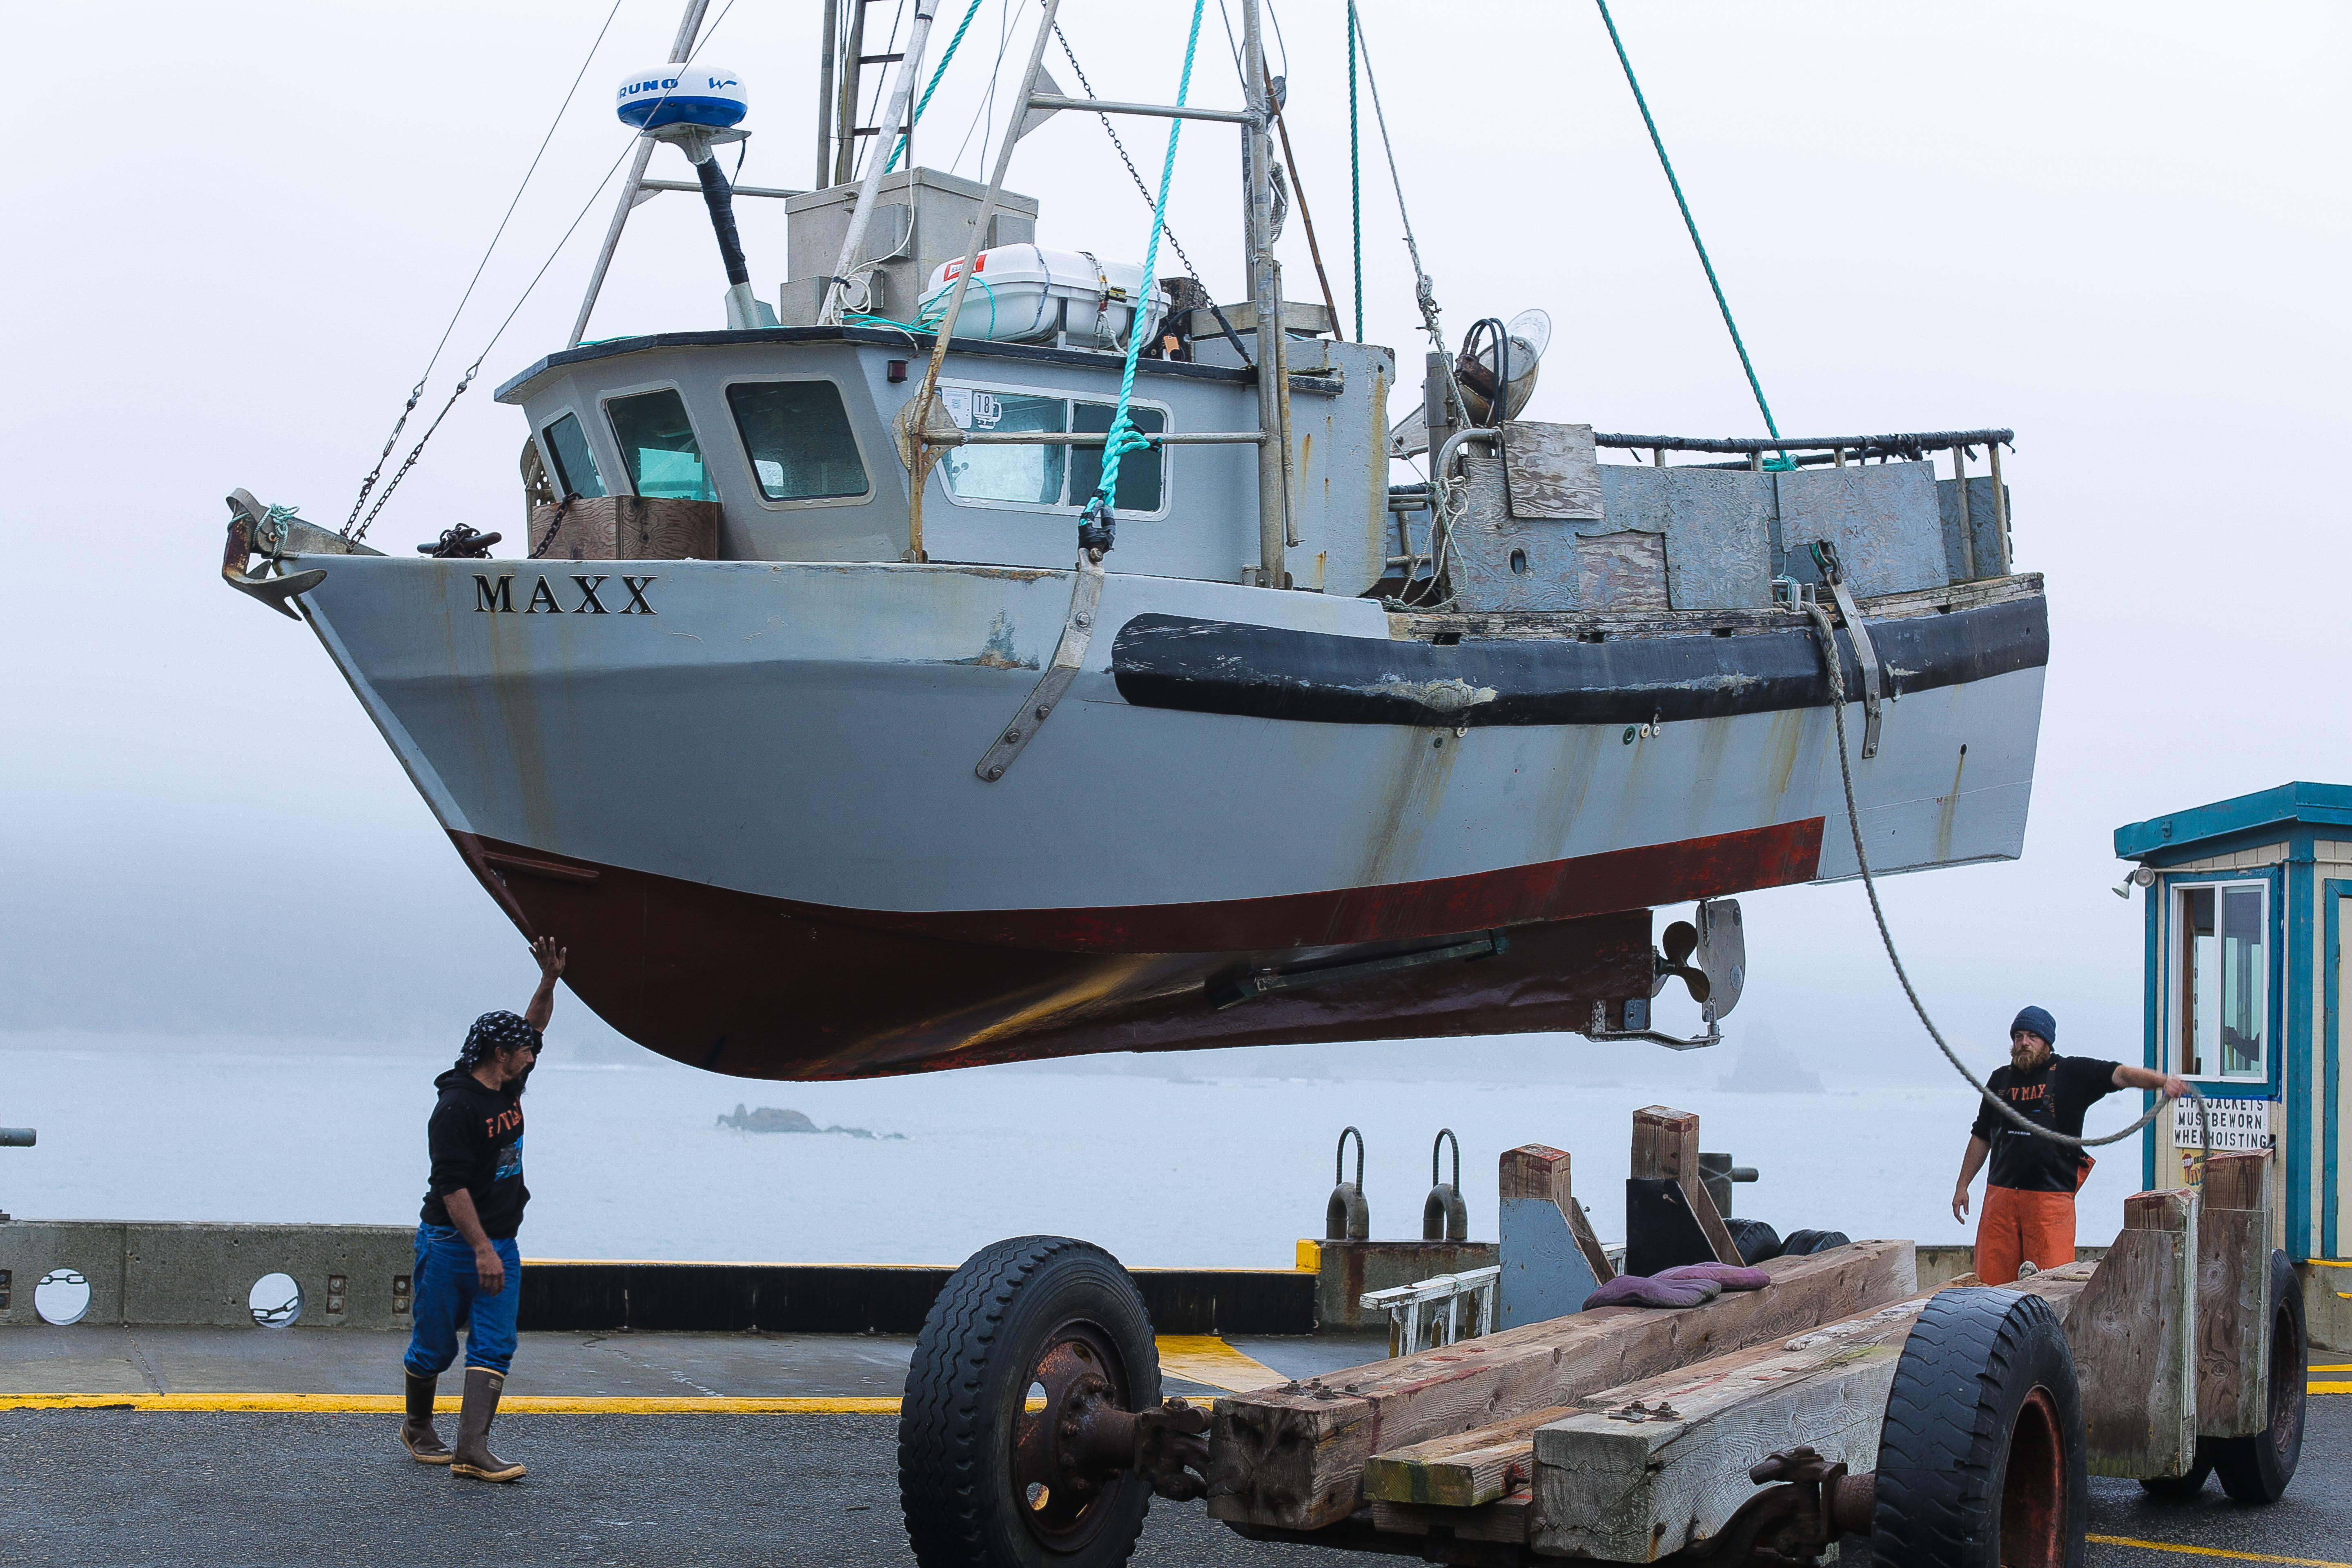 """The fishing vessel """"Maxx"""" is hoisted by crane onto the port of Port Orford's dry dock, May 13, 2018."""